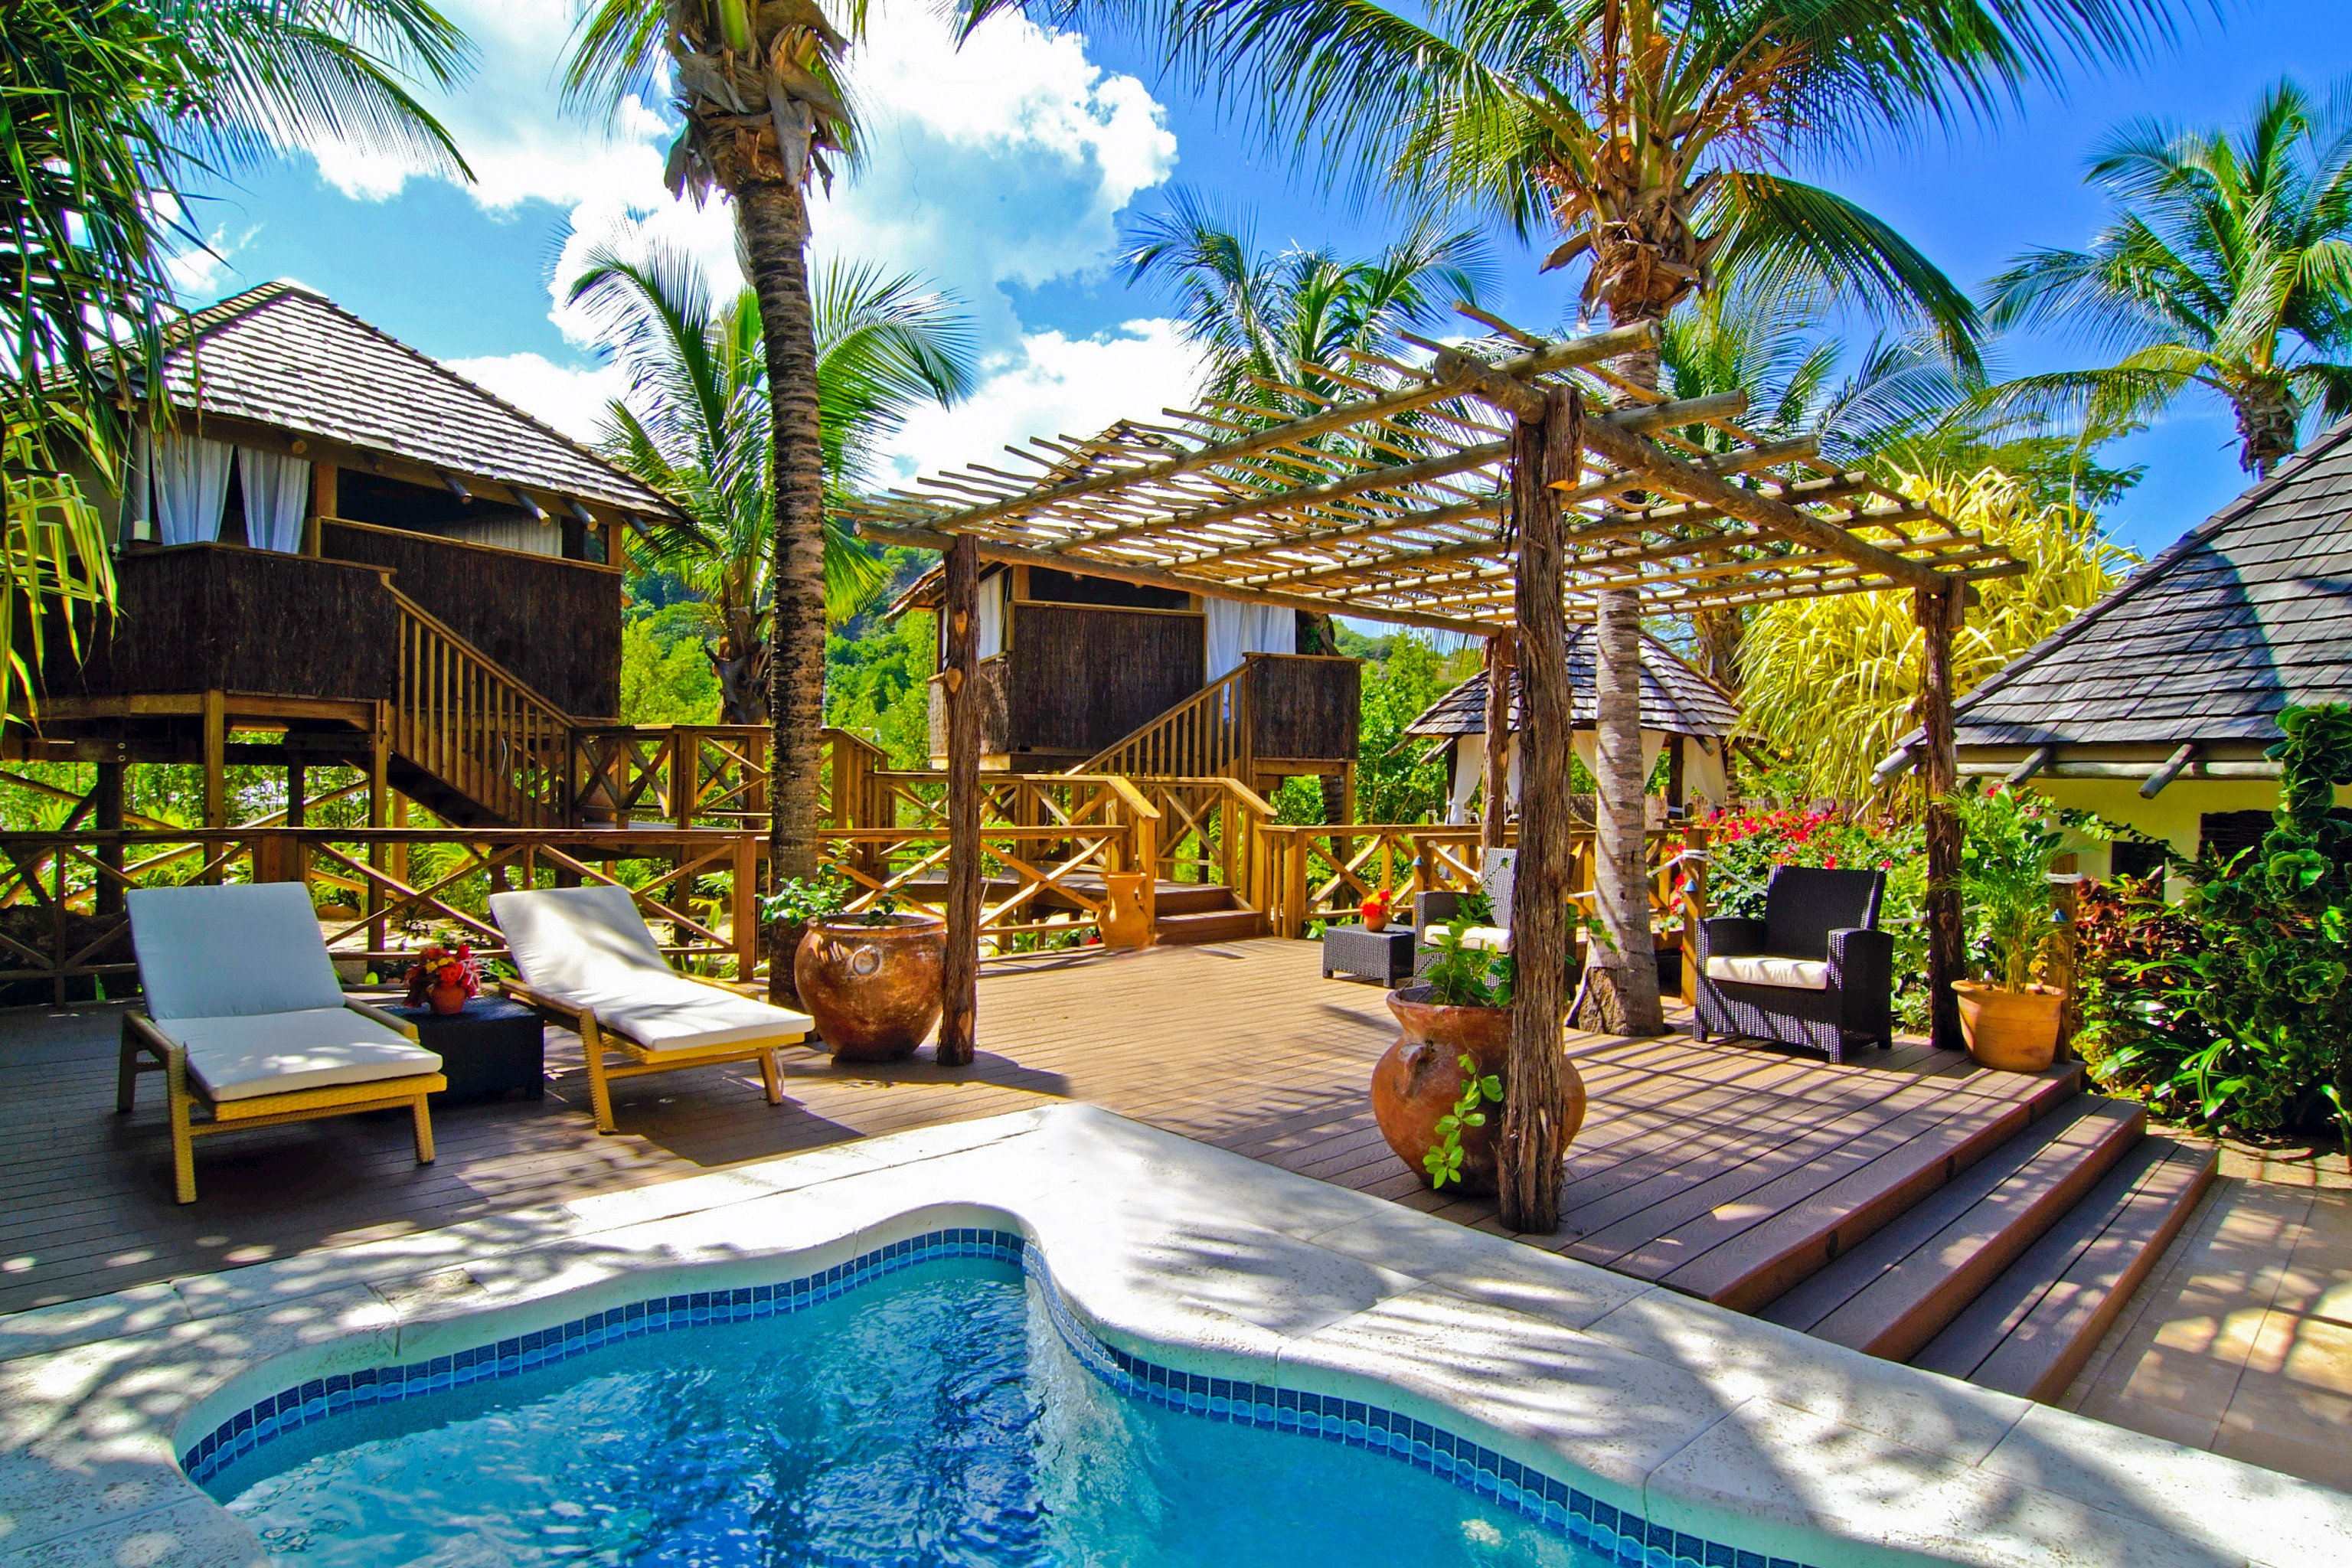 Adult-only All-inclusive Beachfront Luxury Play Pool Resort tree sky swimming pool leisure property caribbean backyard Villa home eco hotel tropics Water park